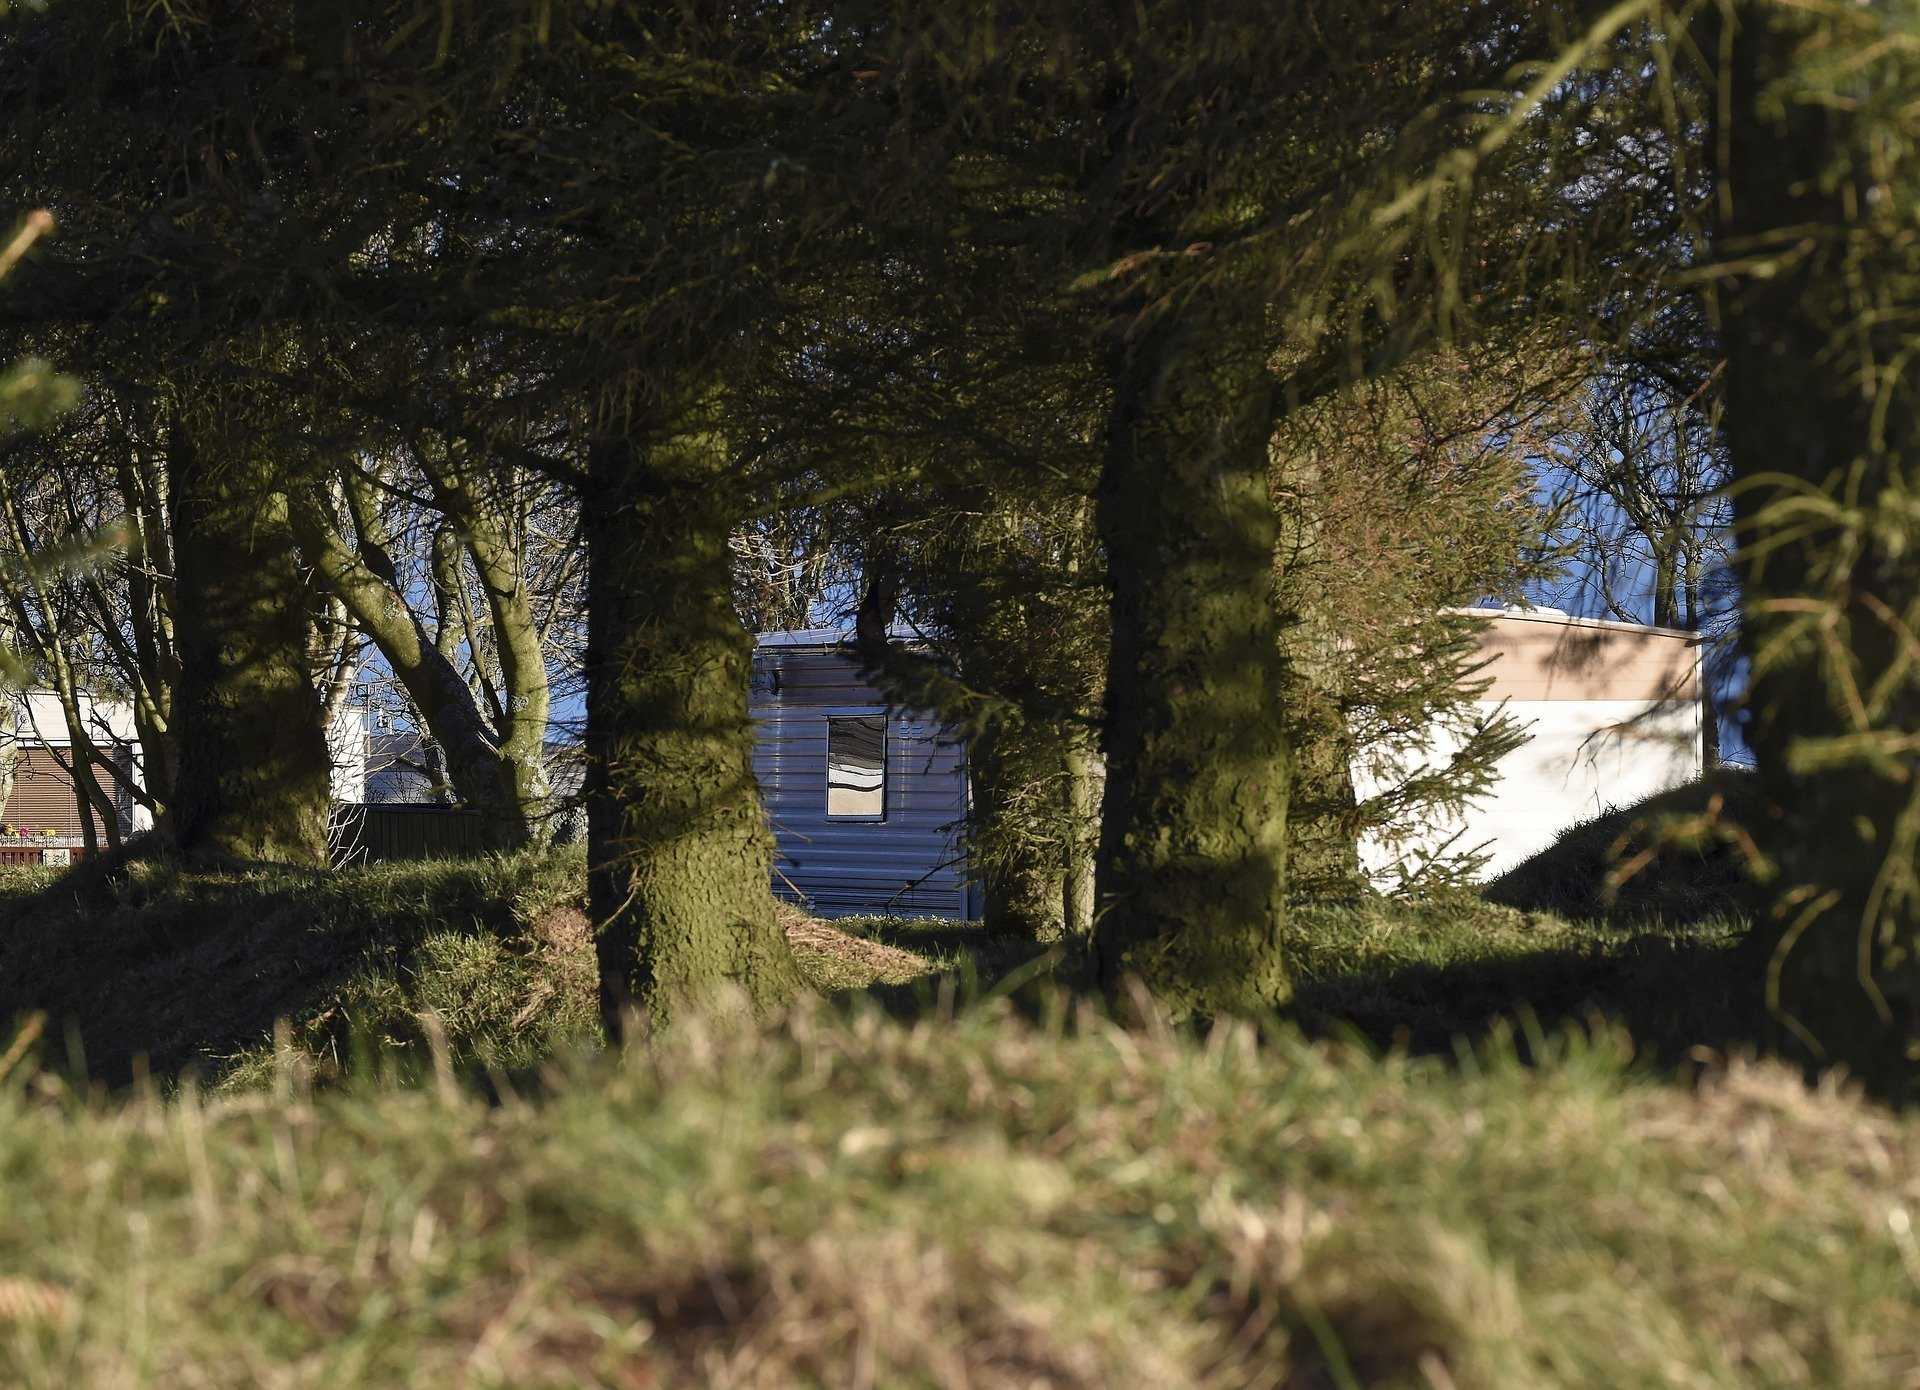 Trailer in the woods. | Source: Kevin Phillips/Pixabay